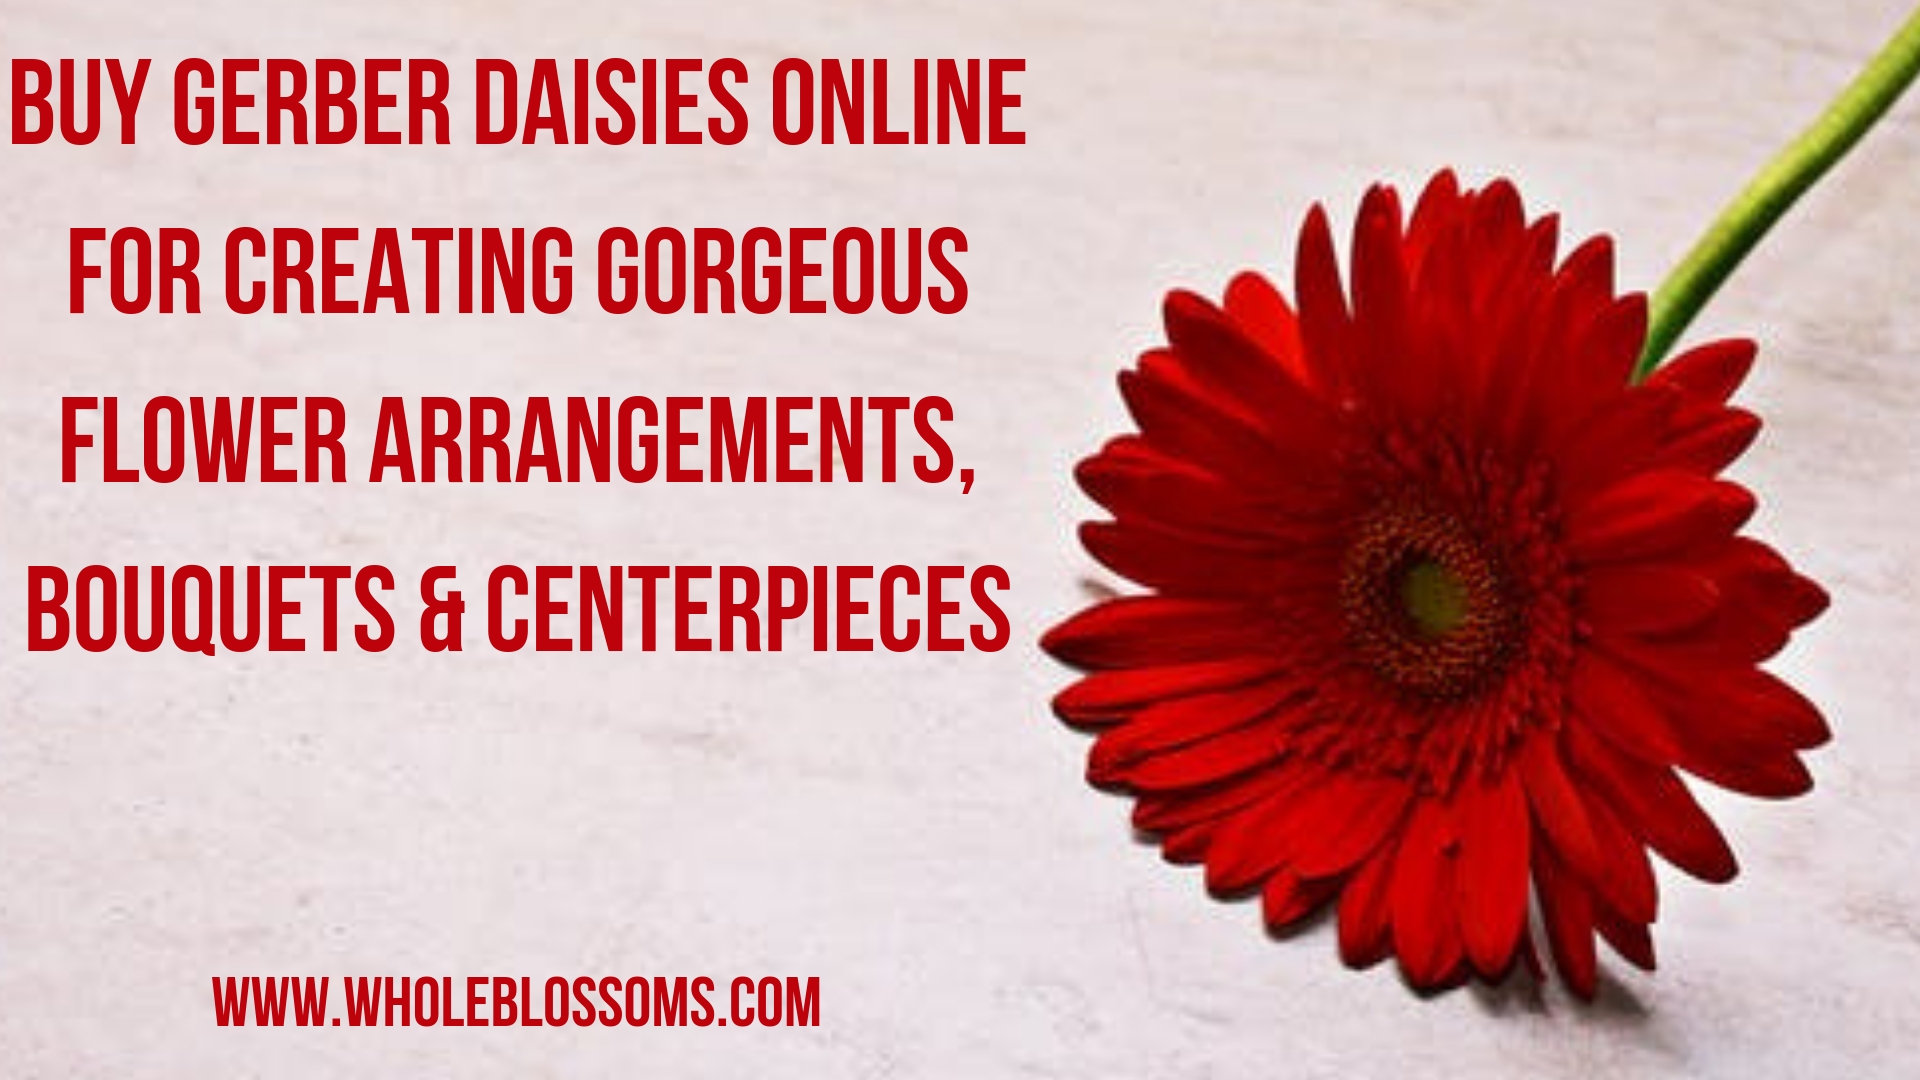 Get Gerbera Daisy Colors Flowers for Wedding Bouquets & Centerpieces